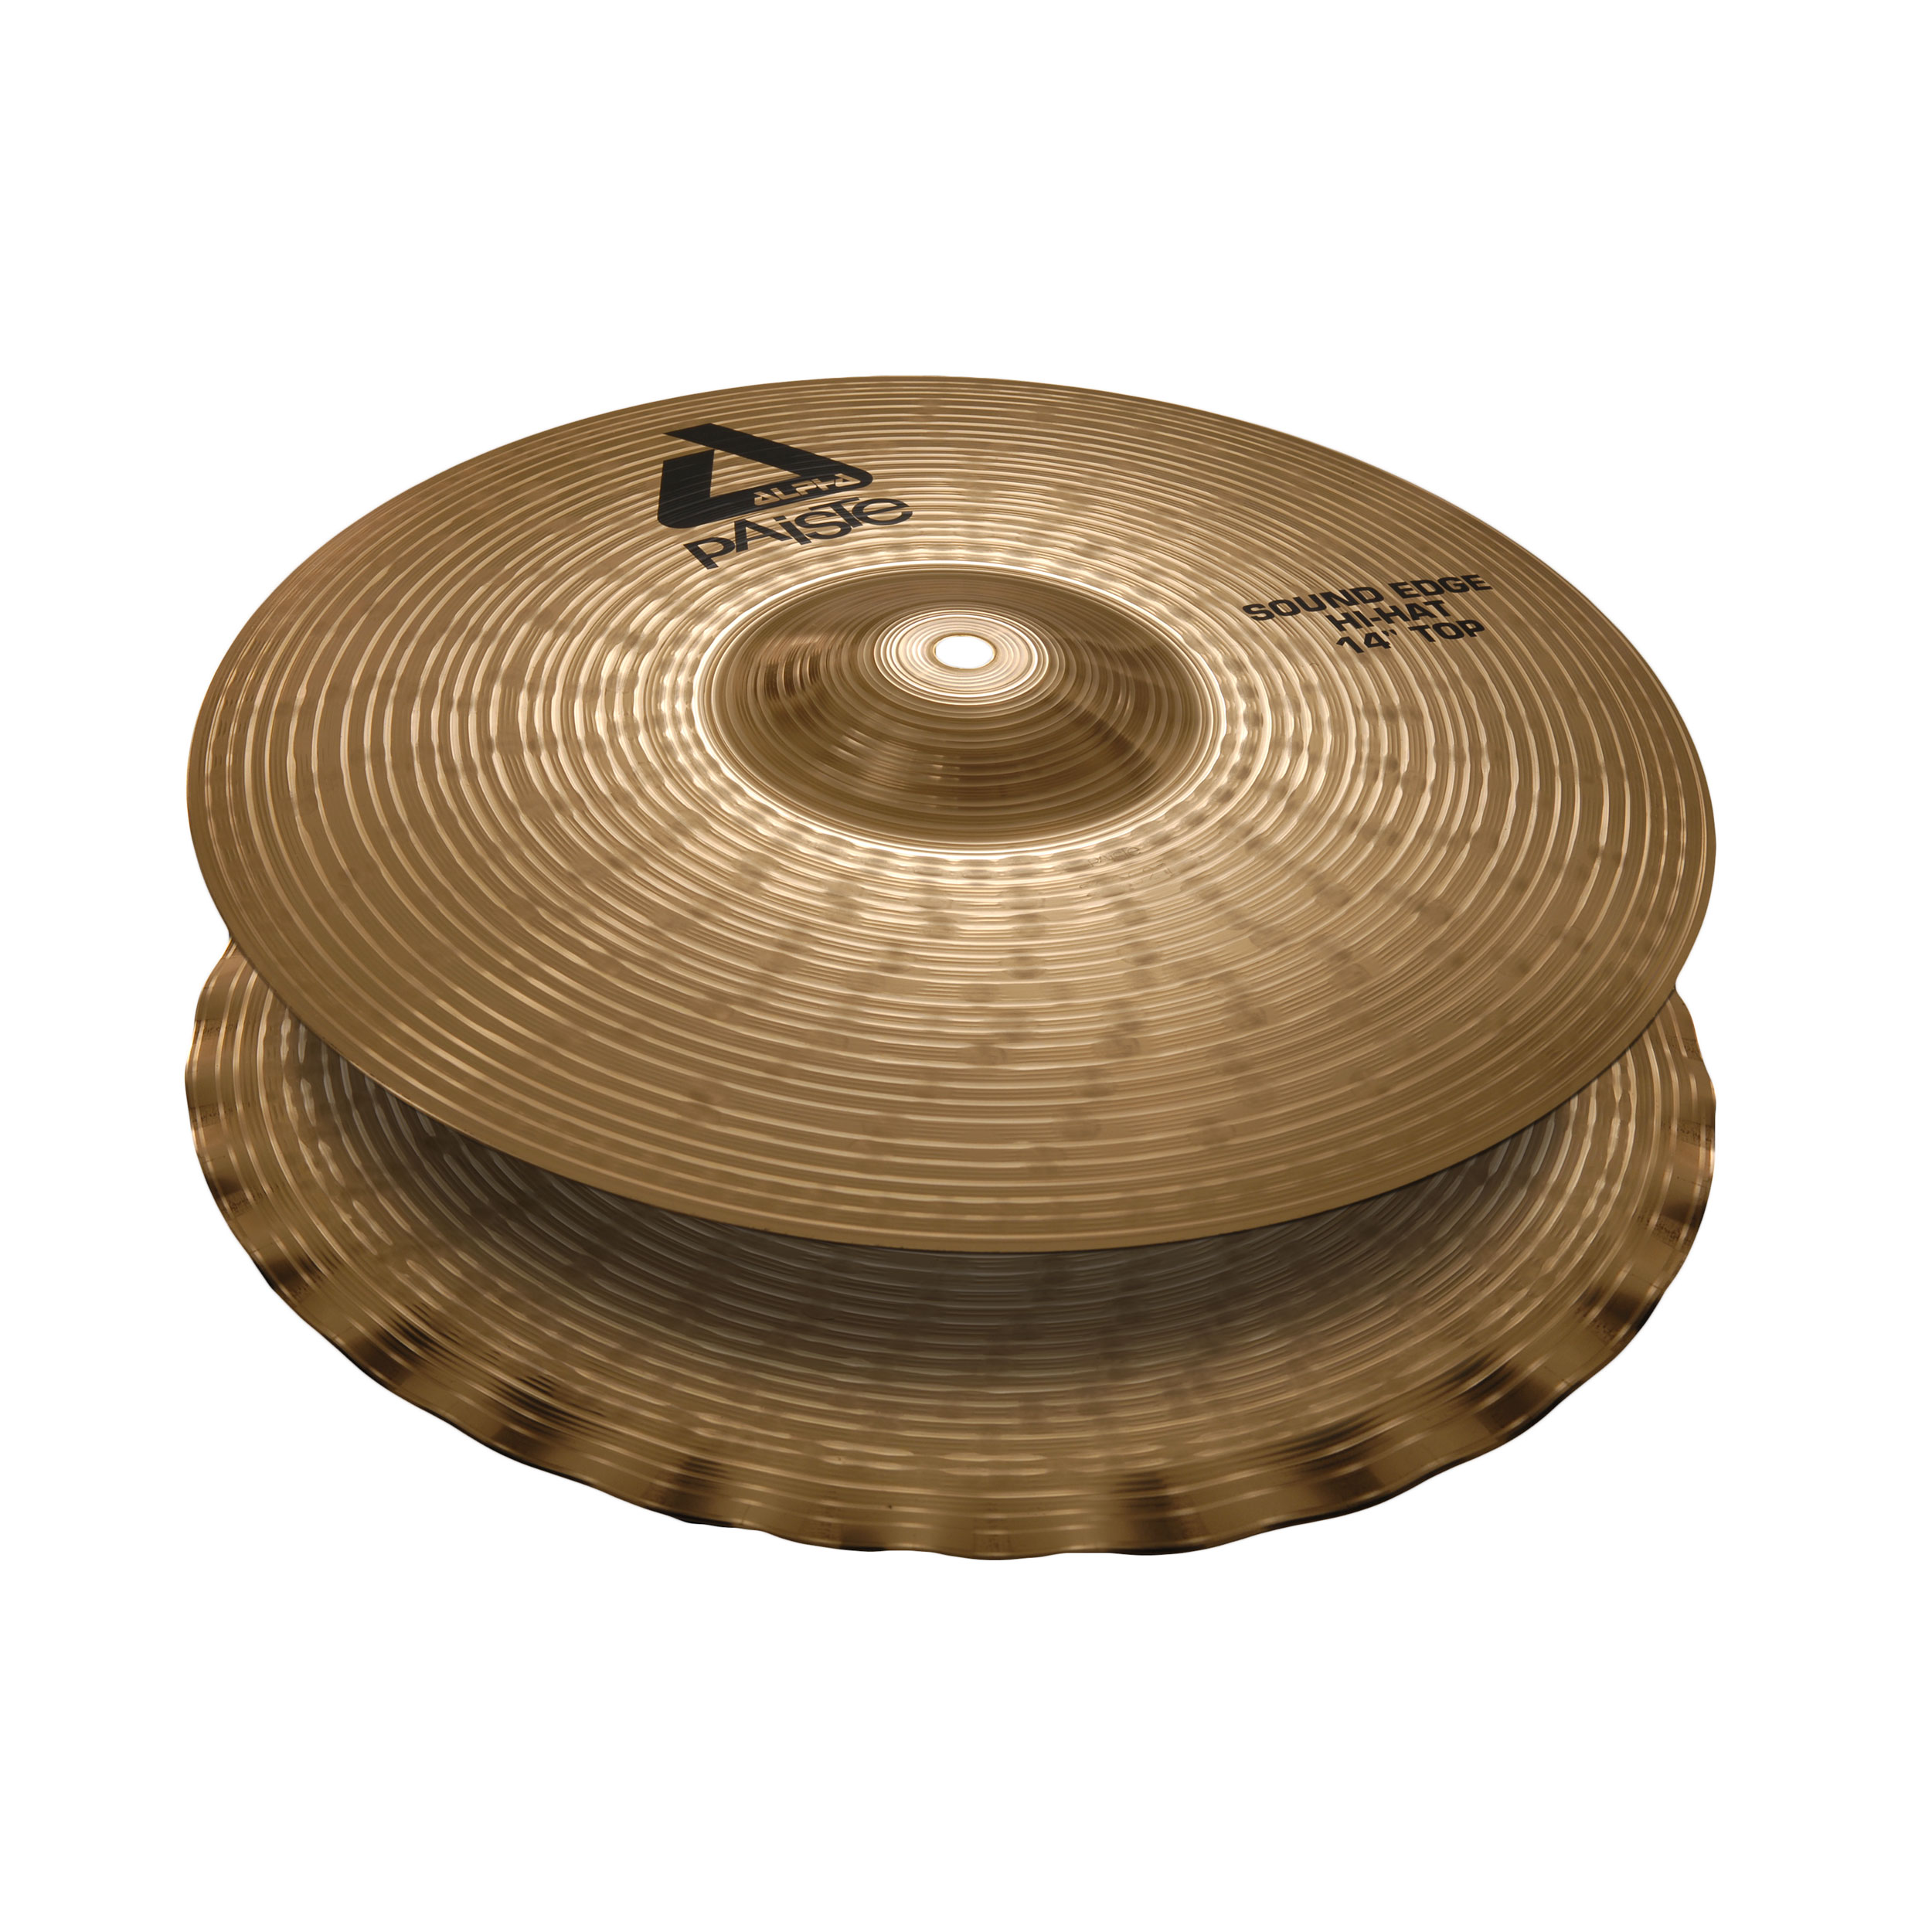 "Paiste 14"" Alpha B Sound Edge Hi Hat Cymbals"